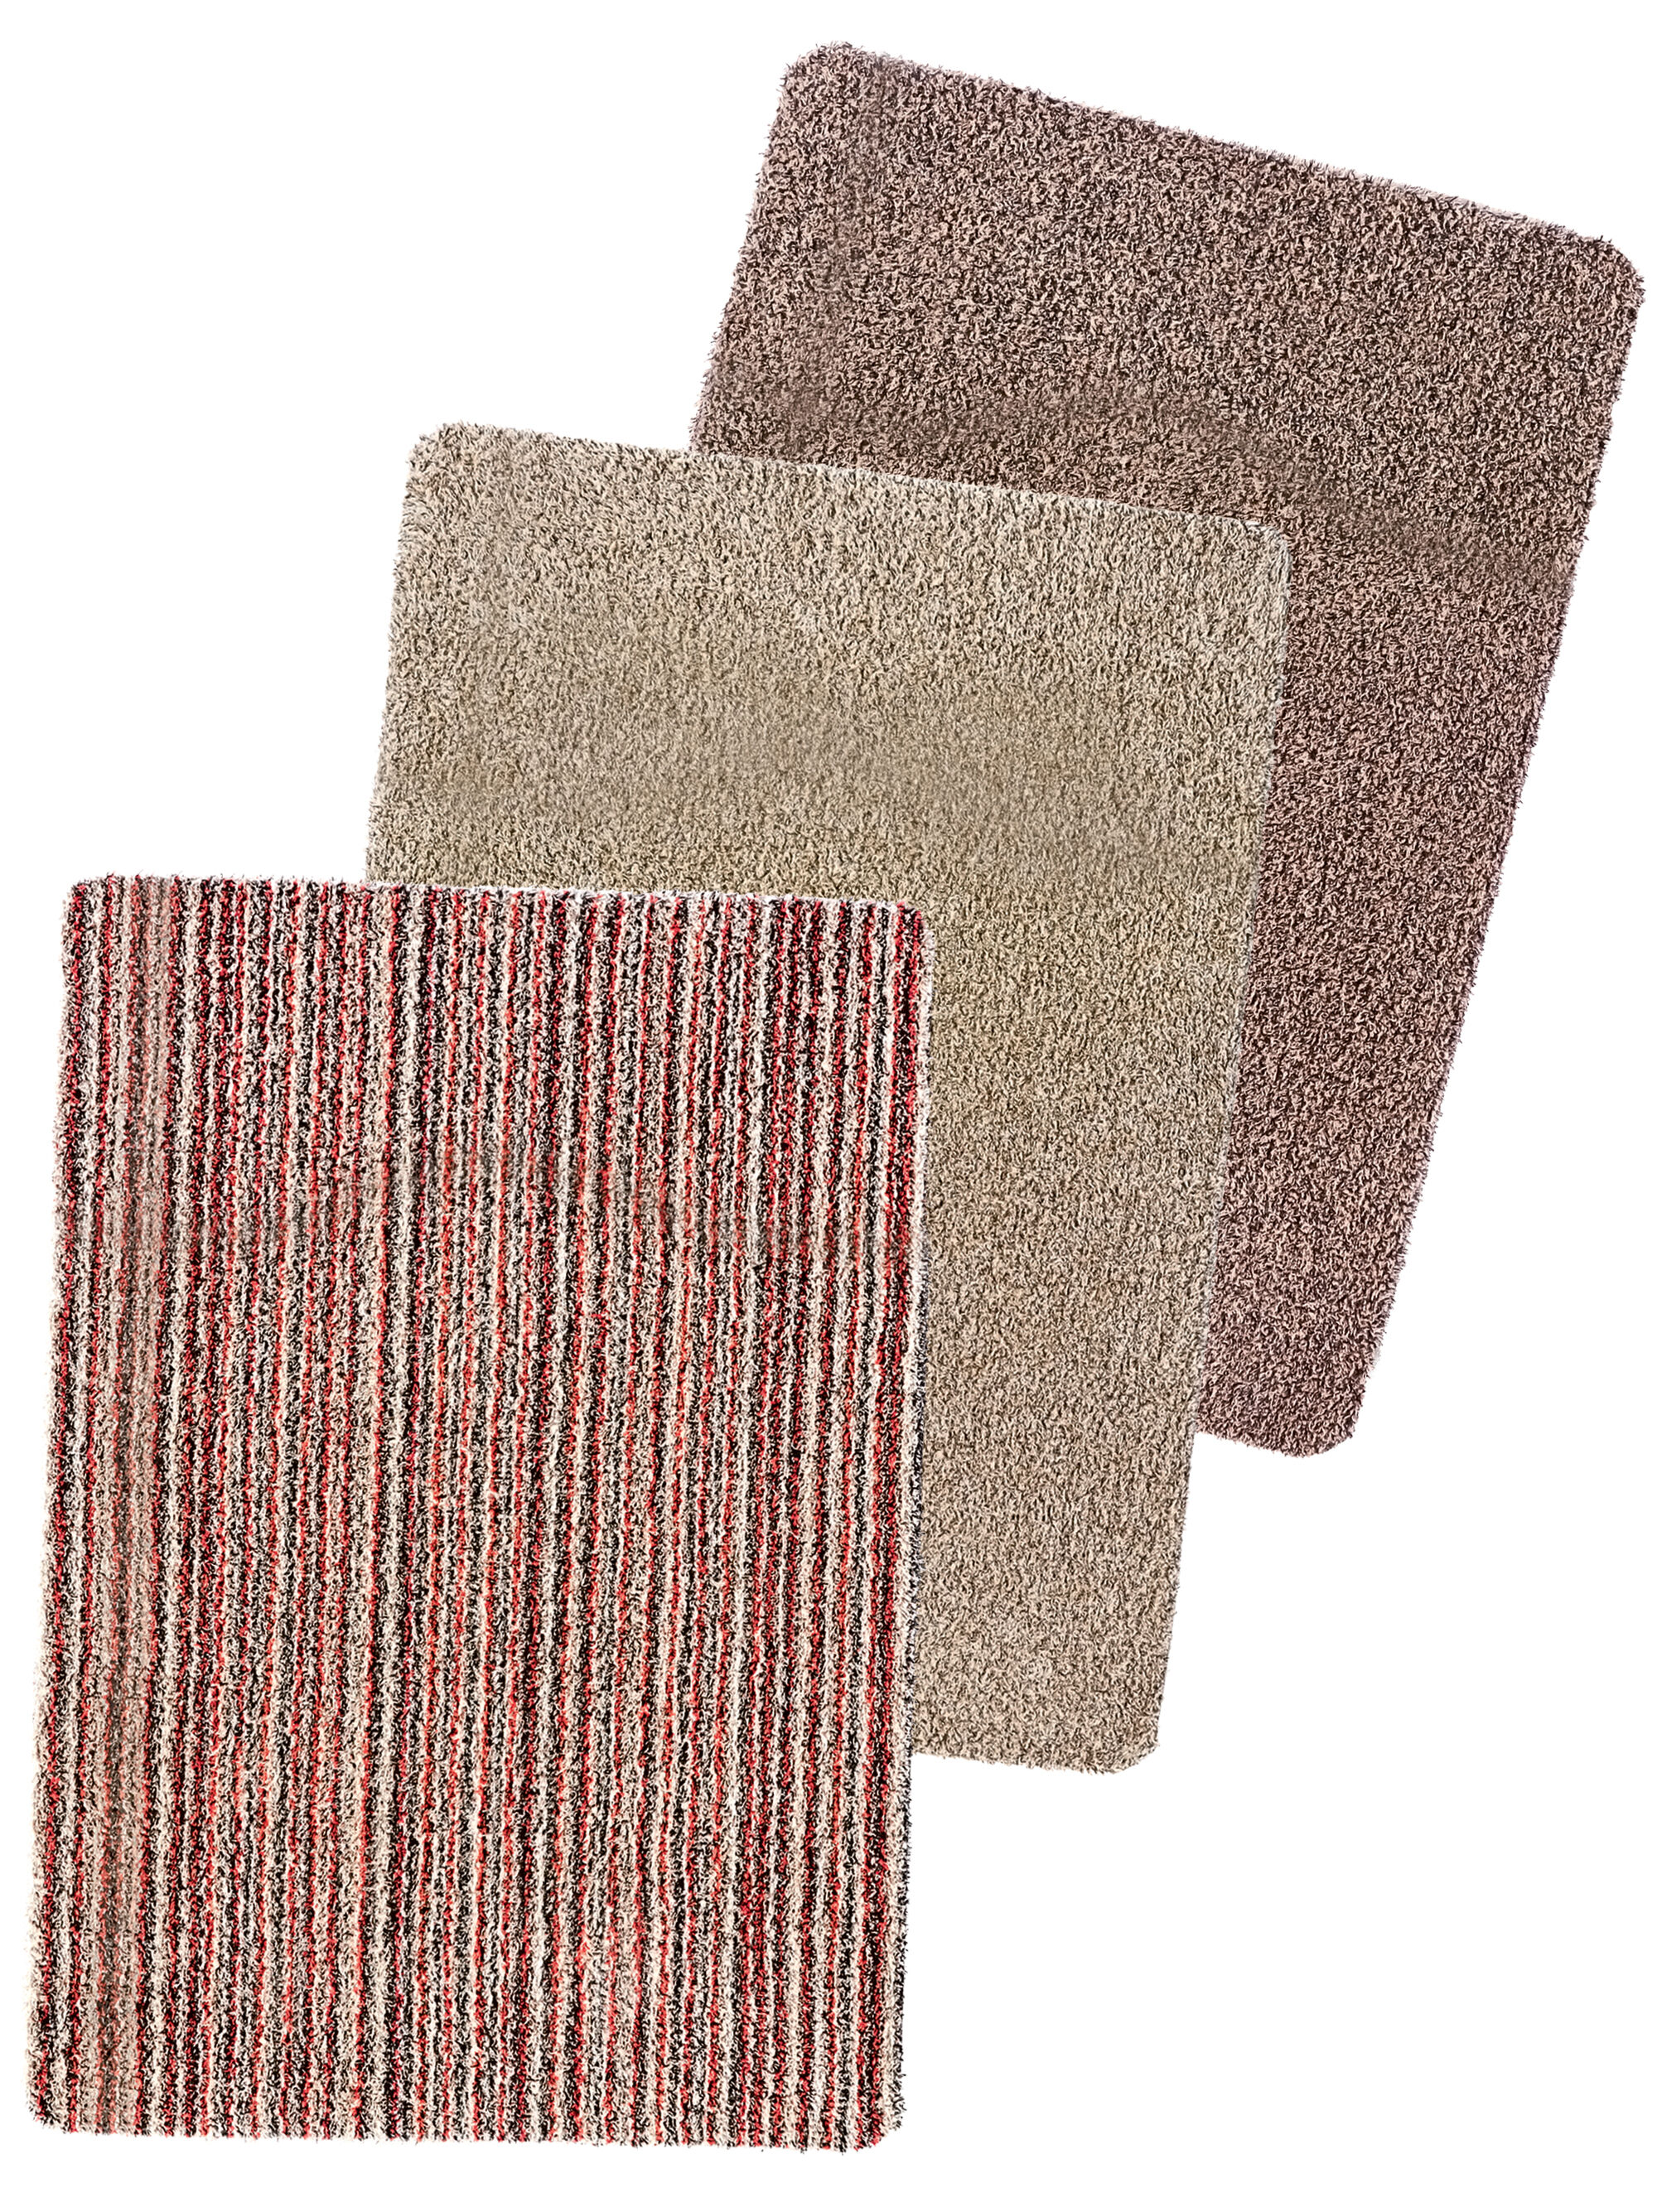 Buy Doormat Door Mats: Indoor Muddle Mat, 2' X 3' | Gardener's Supply